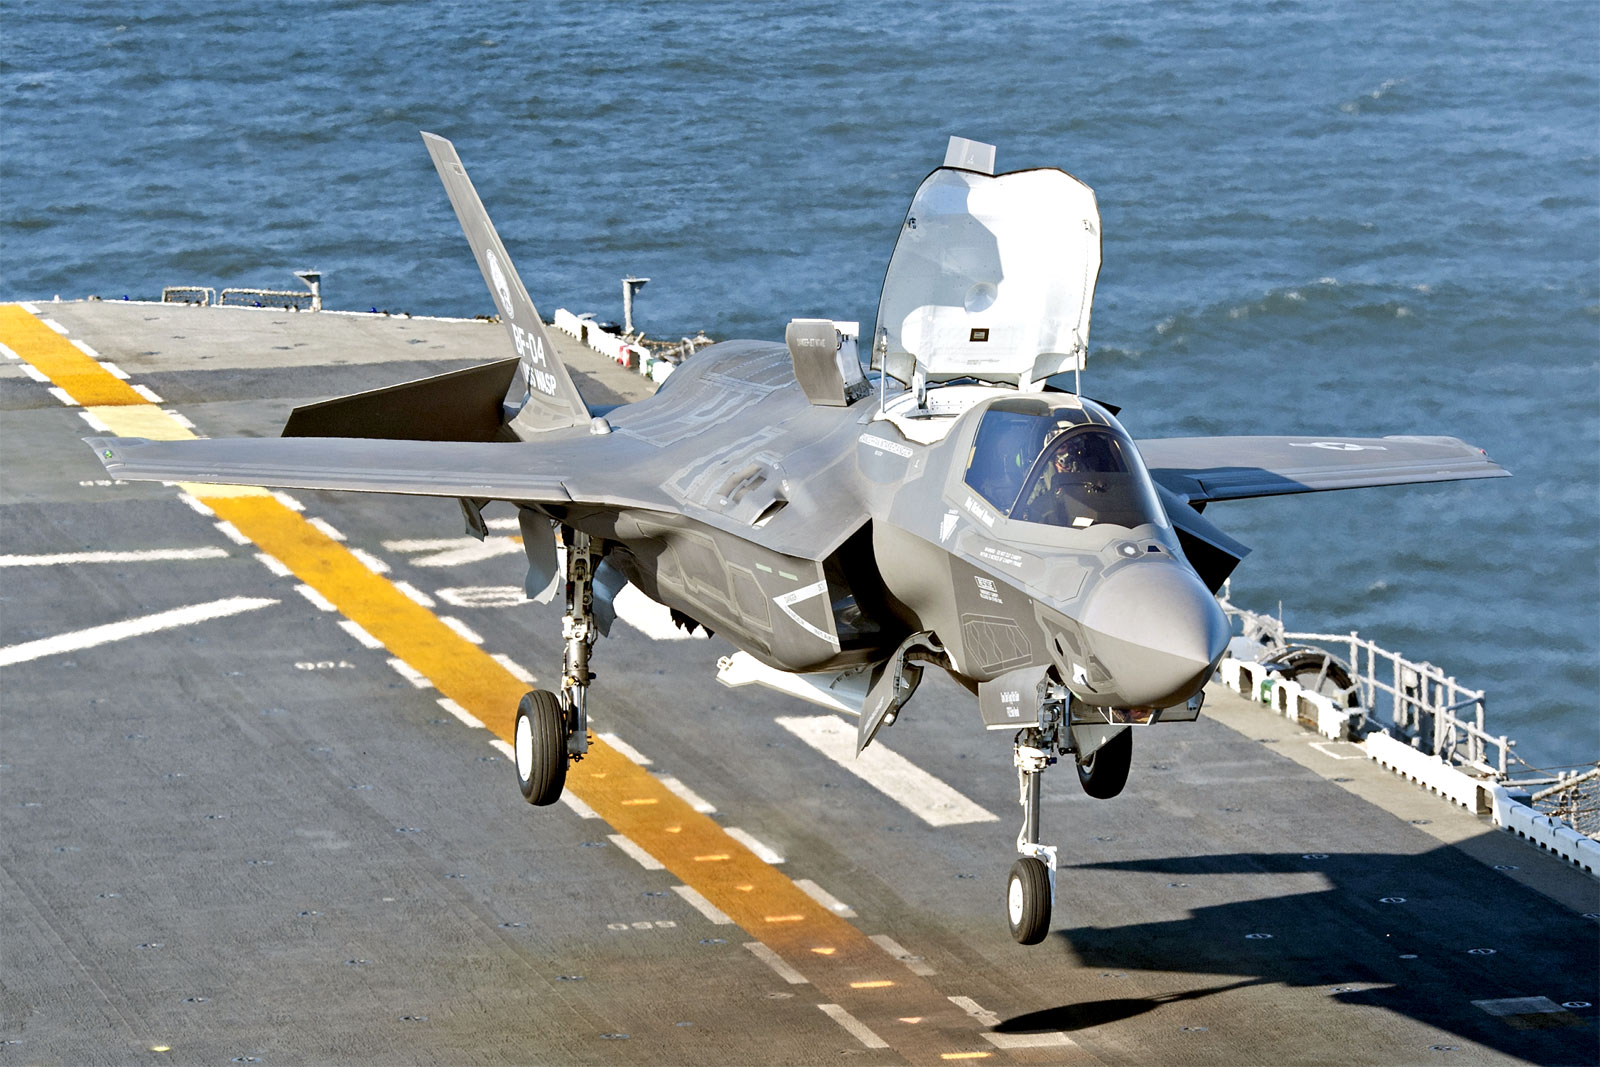 F-35 – The biggest aviation project ever